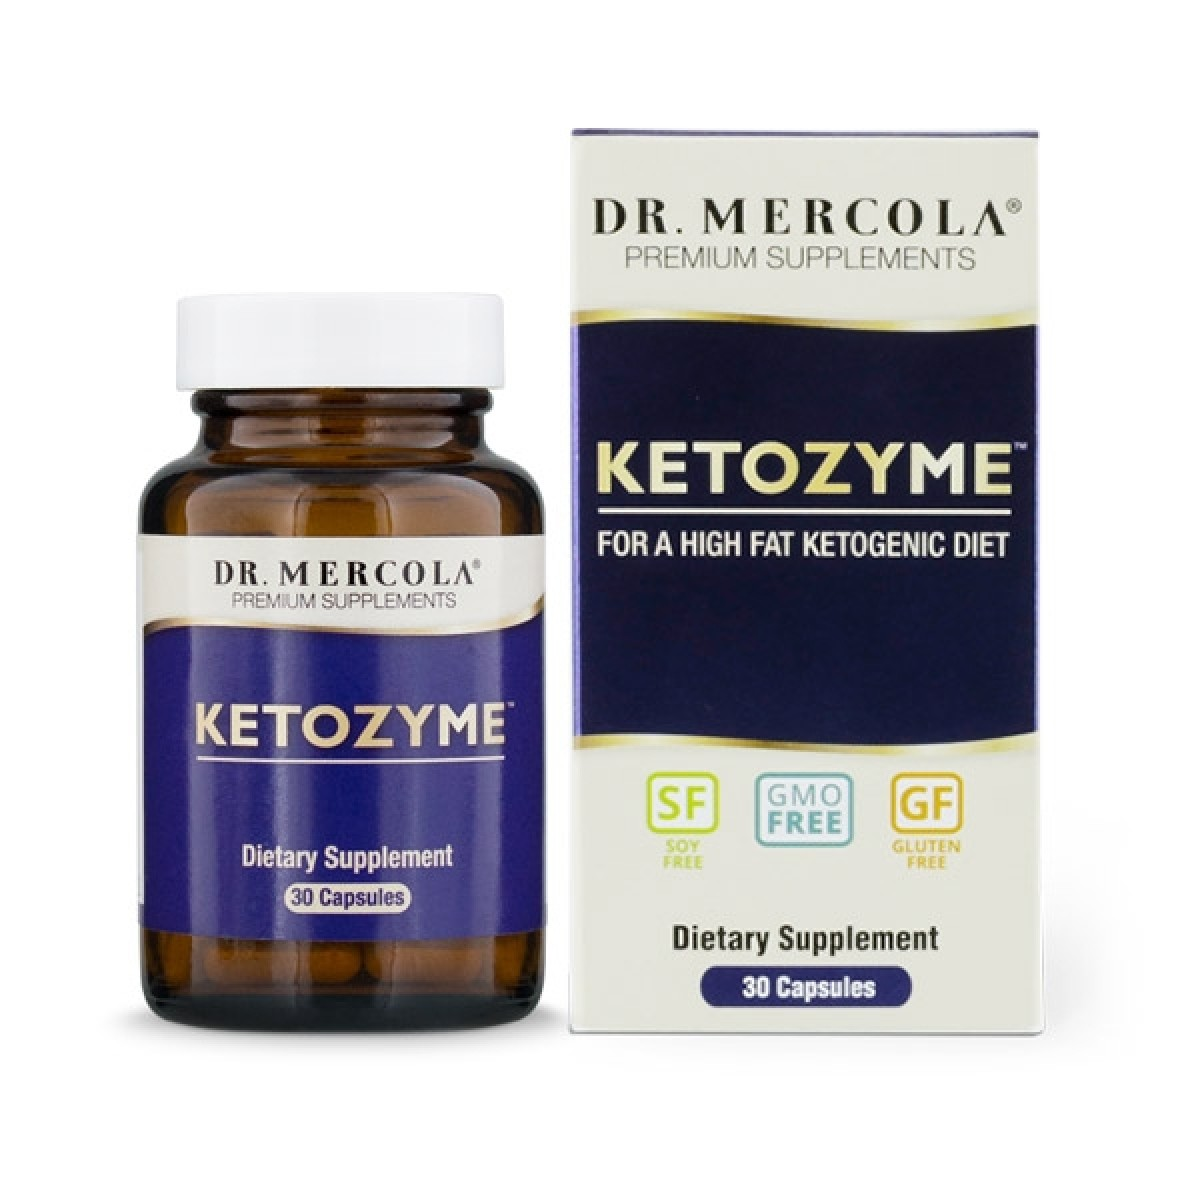 Keto Diet and Keto360 from Dr. Axe